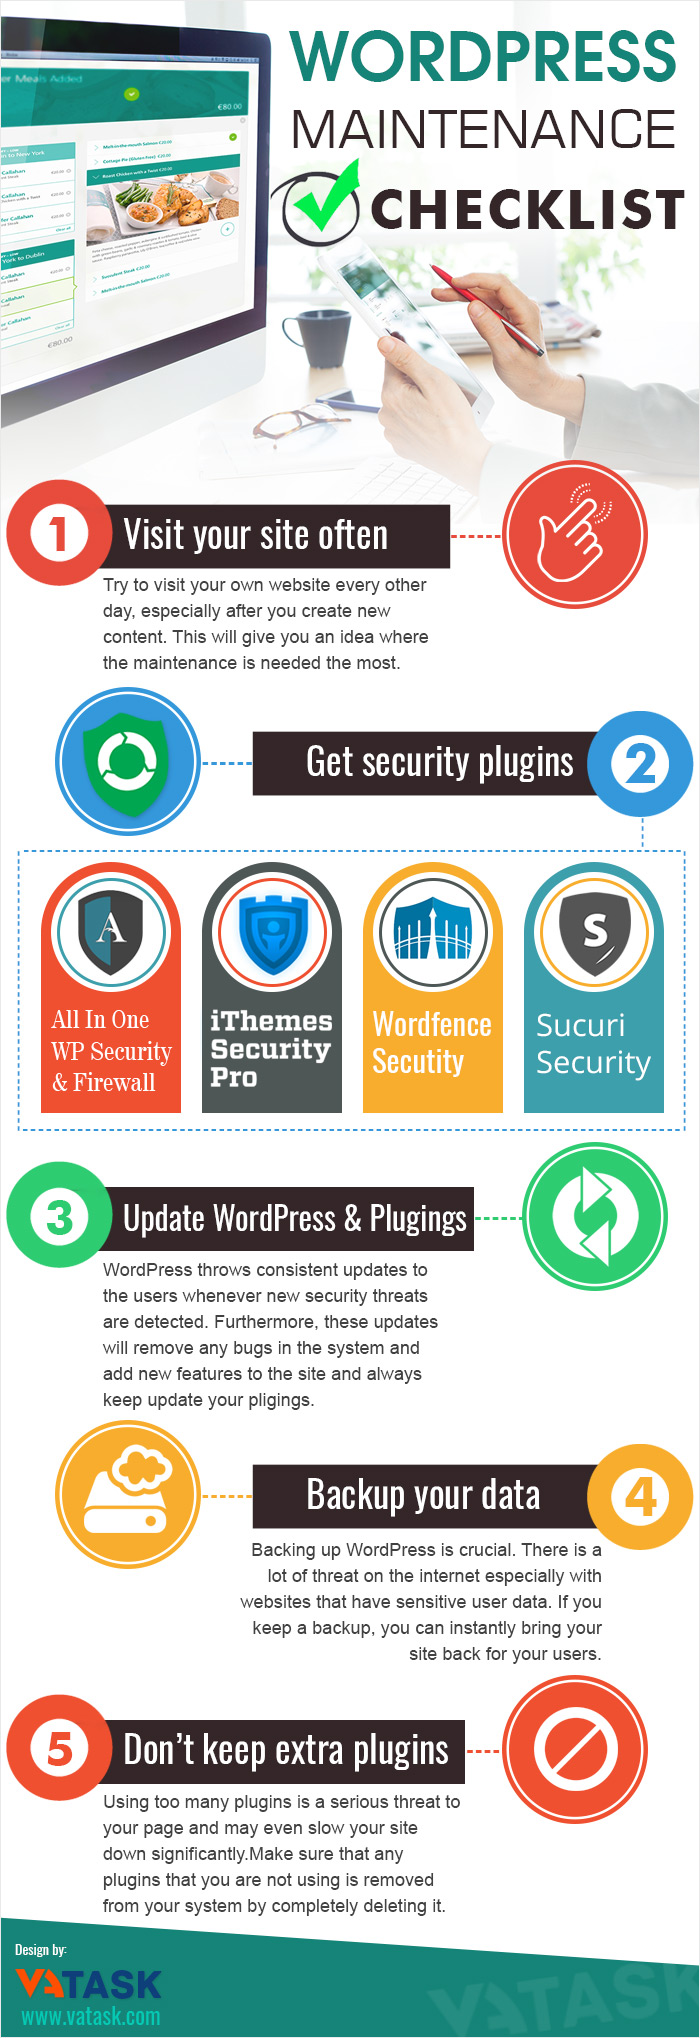 wordpress maintenance checklist infographic